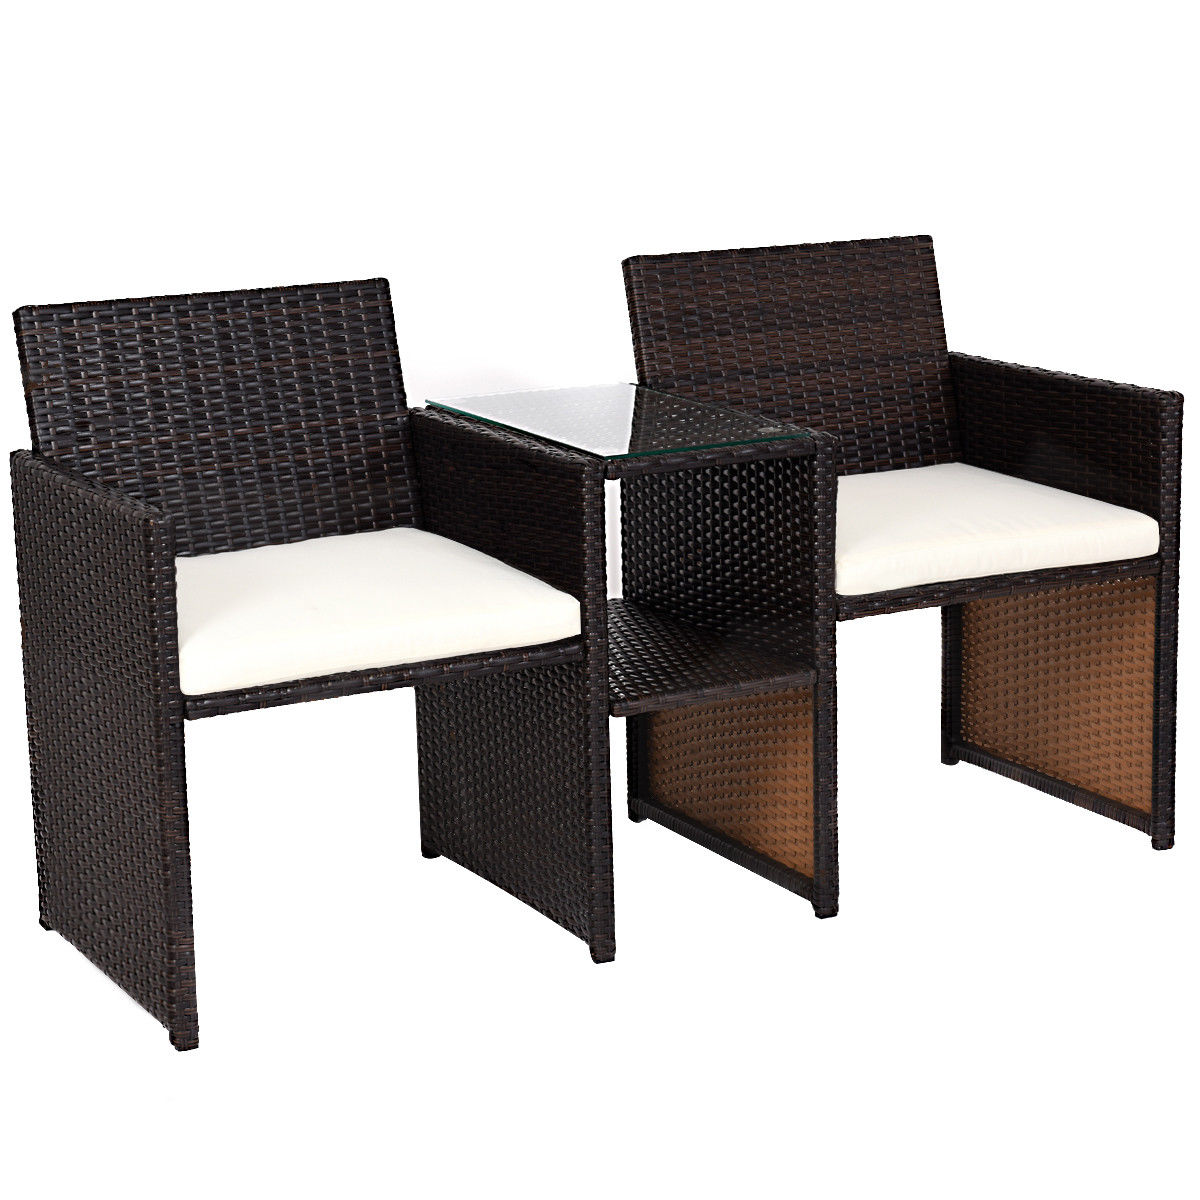 Rattan Table Costway Patio Rattan Loveseat Table Chairs Chat Set Seat Sofa Conversation Cushioned